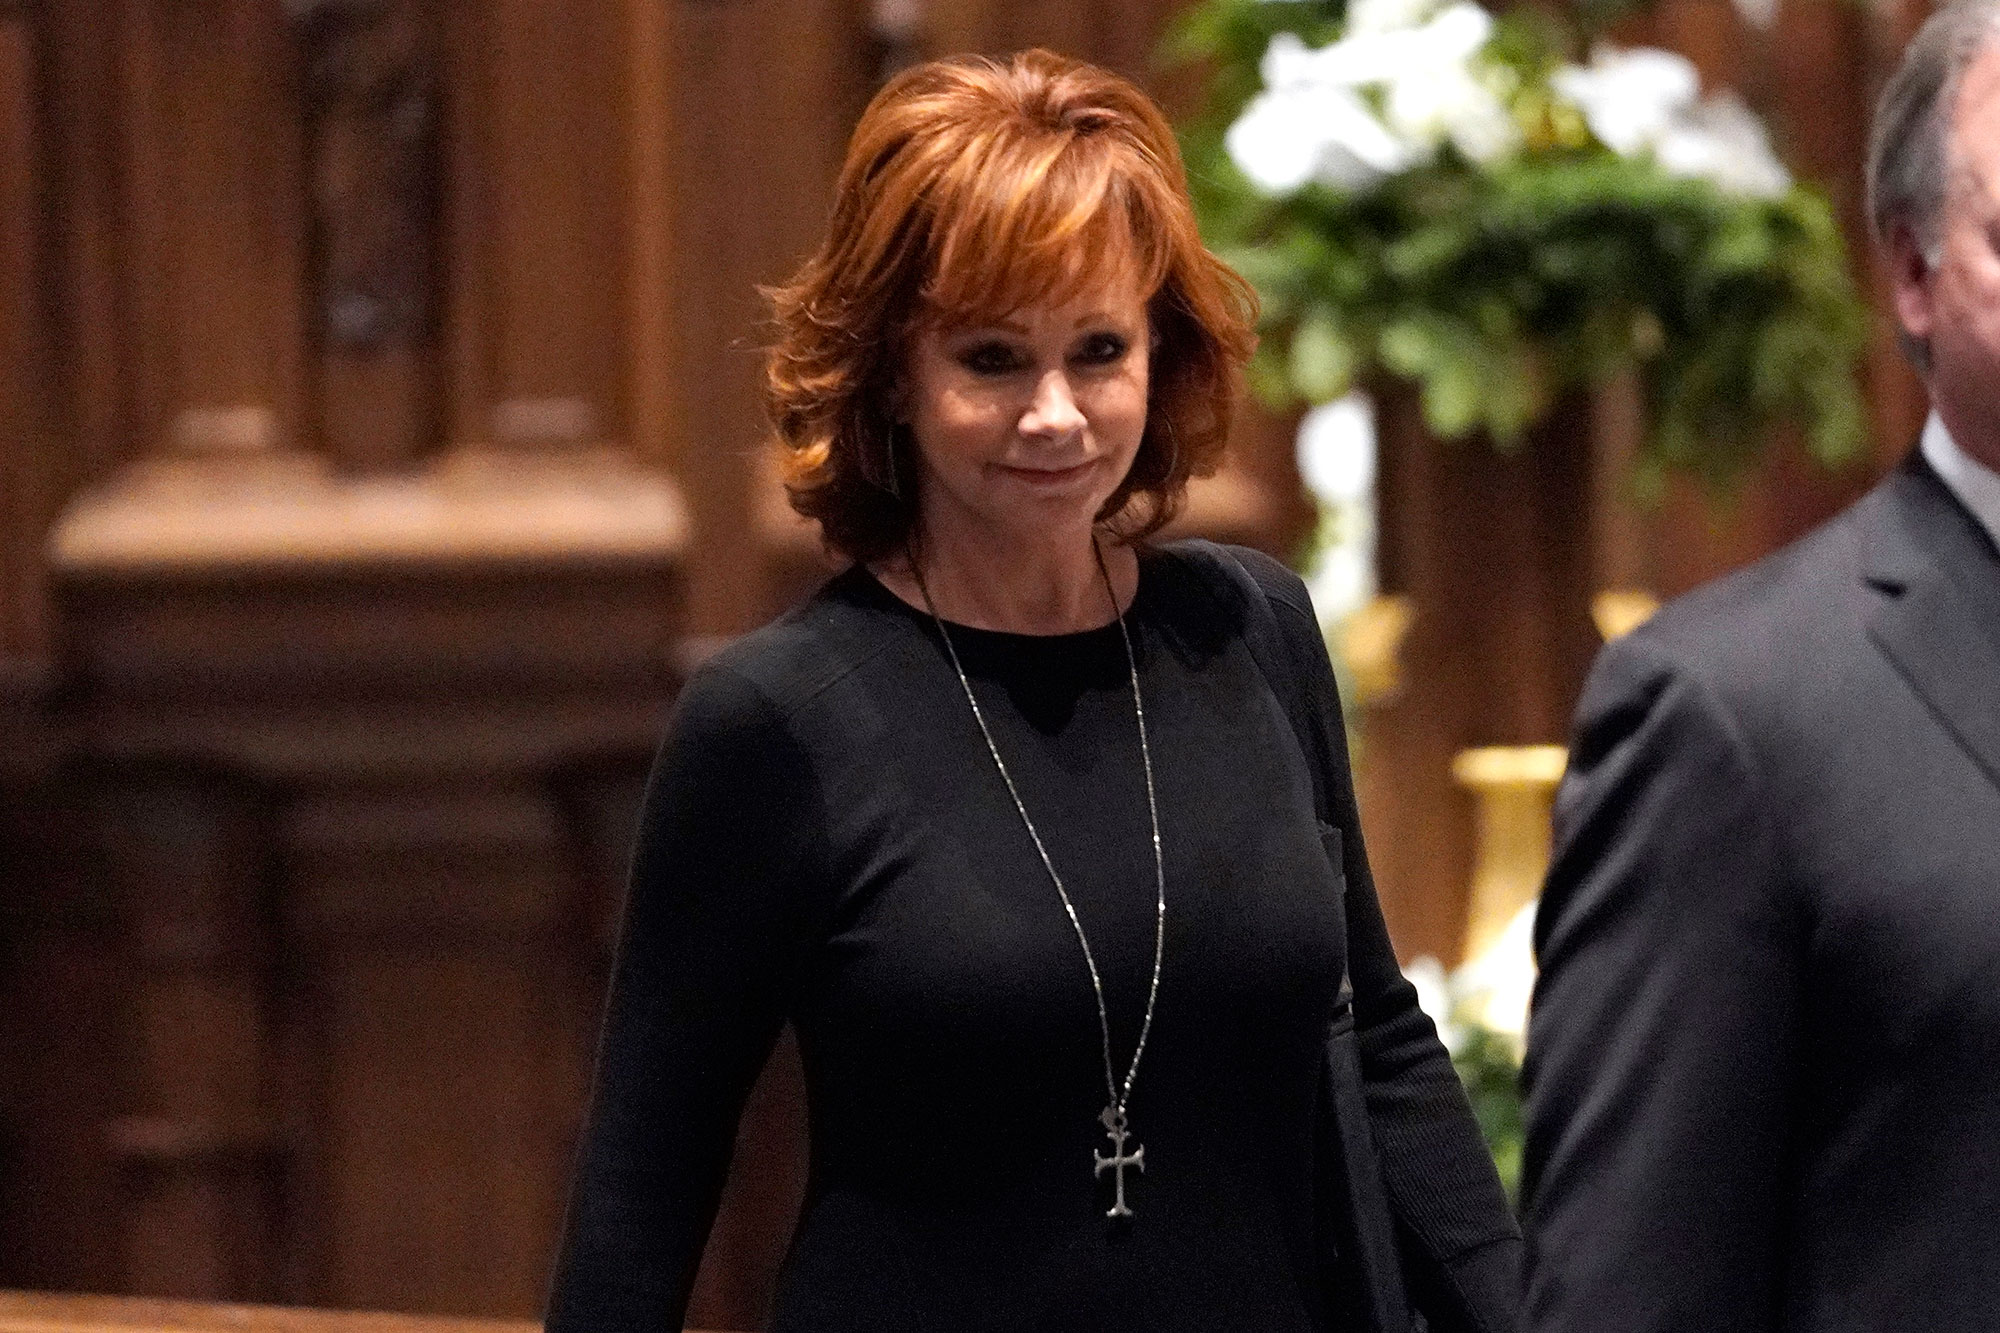 "<div class=""meta image-caption""><div class=""origin-logo origin-image none""><span>none</span></div><span class=""caption-text"">Reba McEntire arrives for a funeral service for former President George H.W. Bush at St. Martin's Episcopal Church Thursday, Dec. 6, 2018, in Houston. (David J. Phillip, Pool/AP Photo)</span></div>"